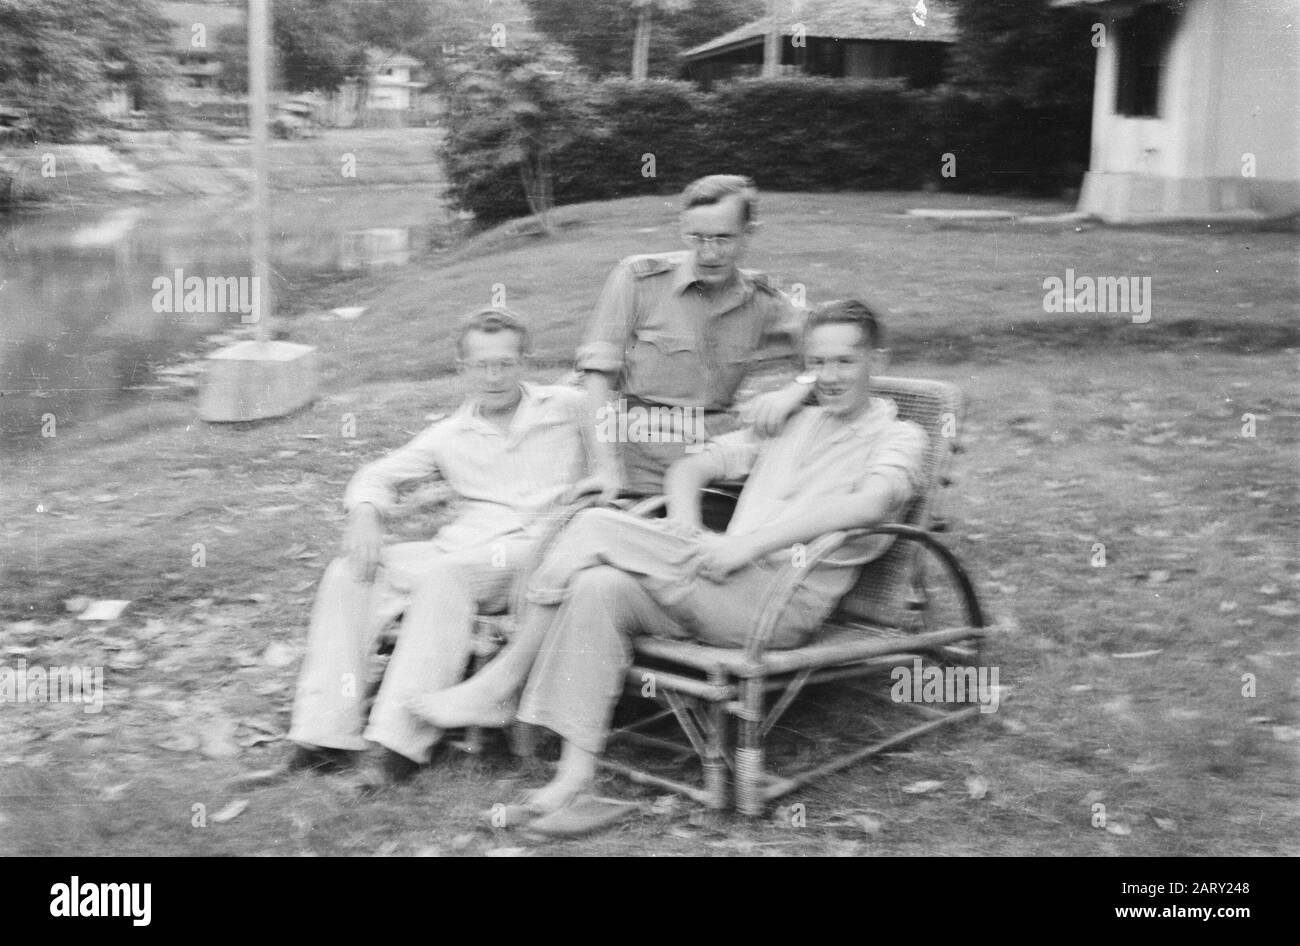 Two Men In Pajamas Sitting In Wicker Chairs Between Them An Administrative Officer Location On A